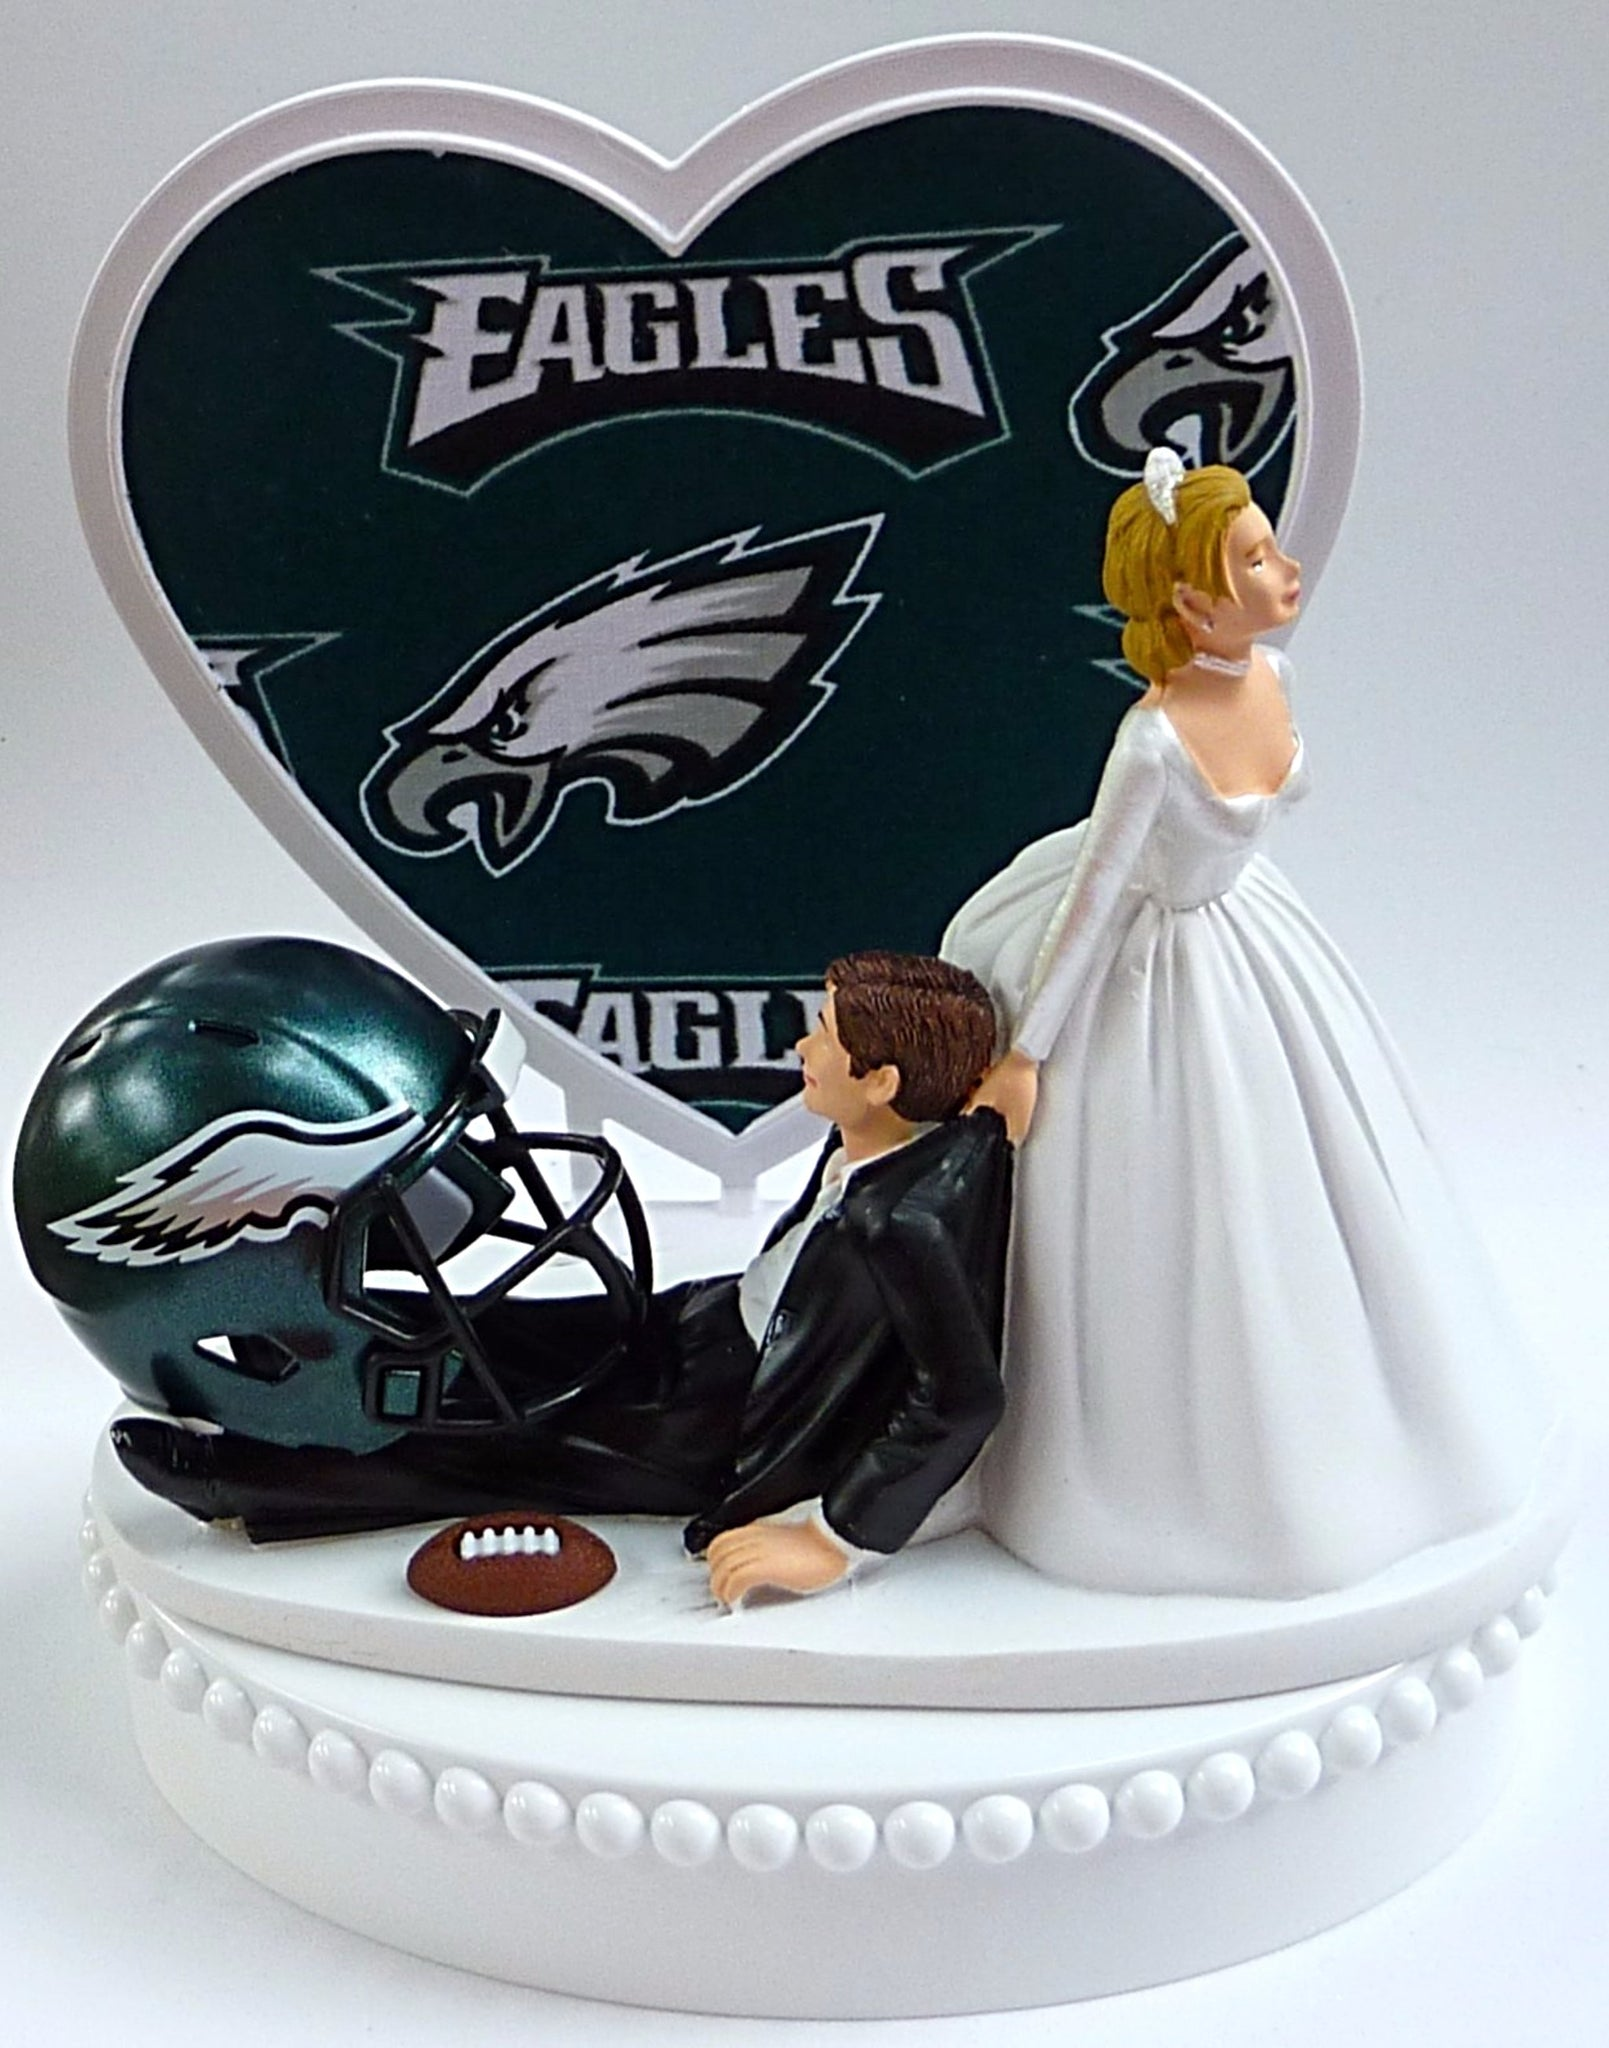 Philadelphia Eagles Football Turf Wedding Cake Topper FunWeddingThings.com Sports Fans NFL Fun Reception Bride Groom